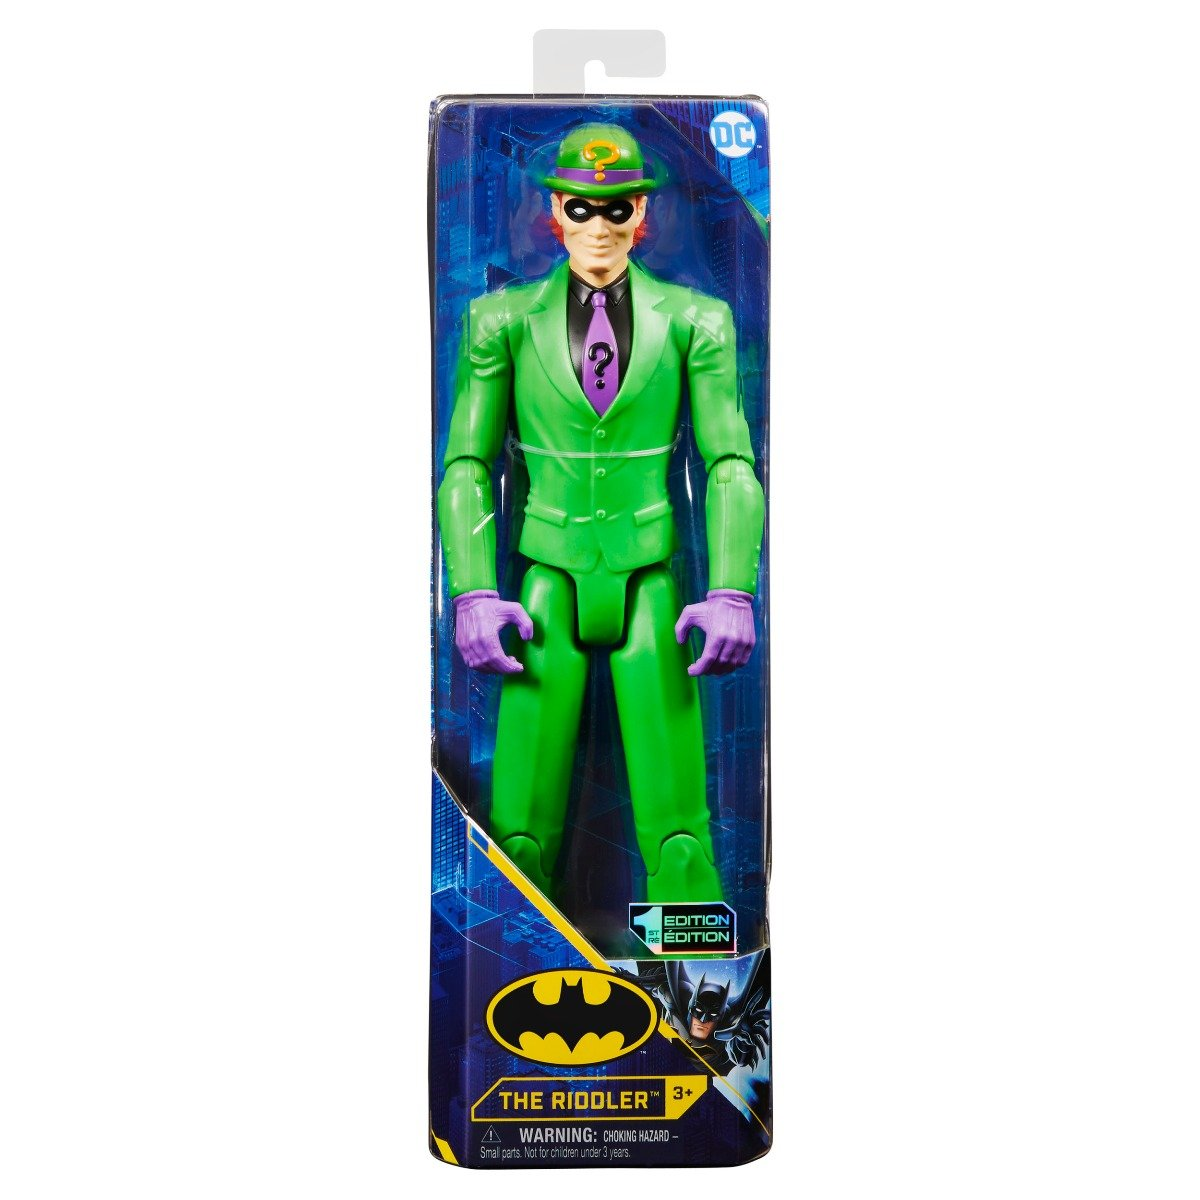 Figurina articulata Batman, The Riddler 20129643